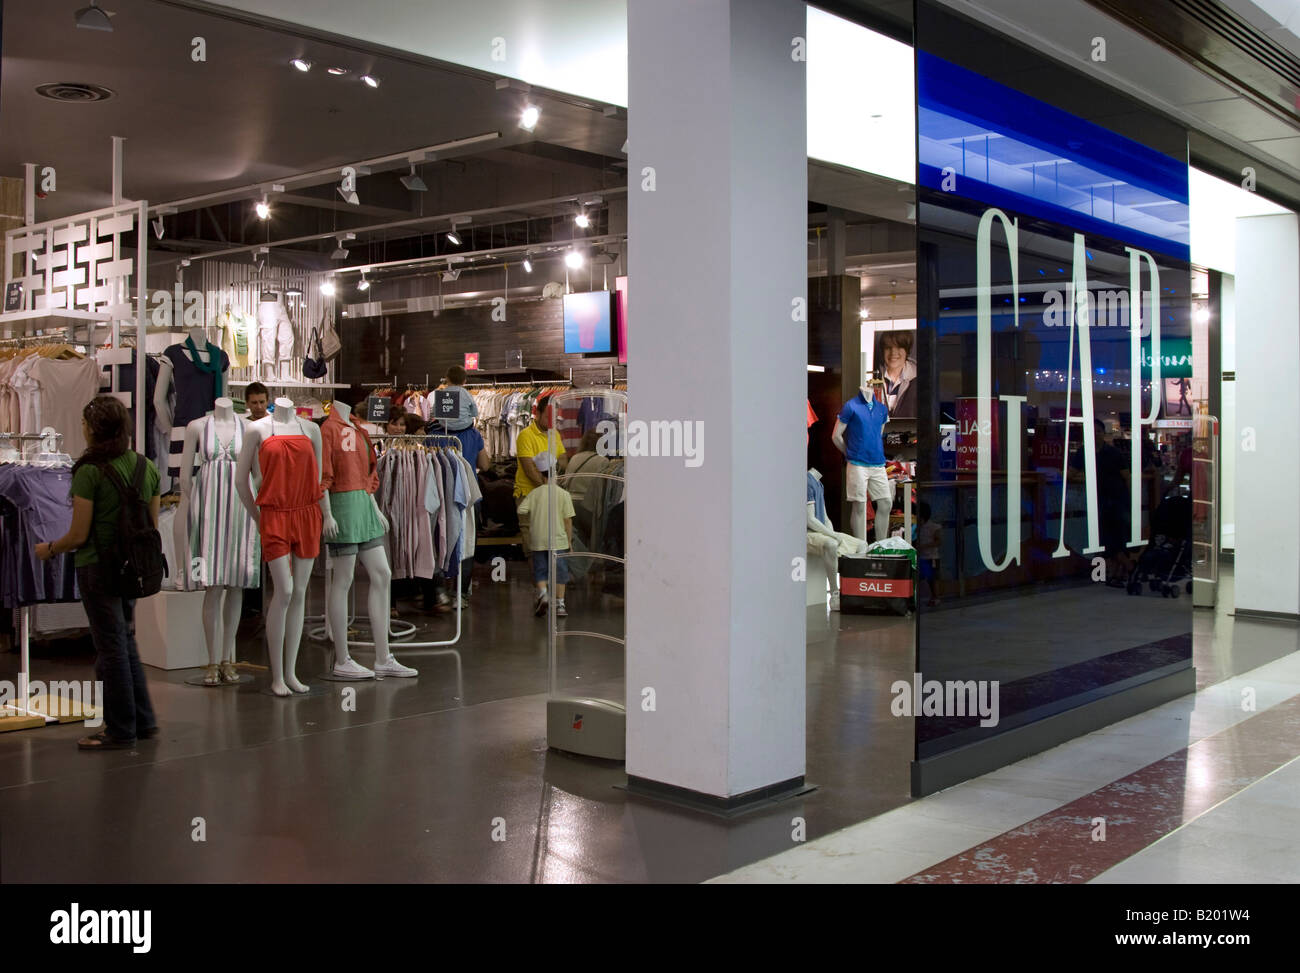 Gap Outlet Save up to 40% on everyday low prices at Gap Outlet. With great-fitting denim in an assortment of styles and washes for men and women, as well as the best in khakis, t-shirts, active wear and accessories, there's always something for everyone at Gap Outlet.